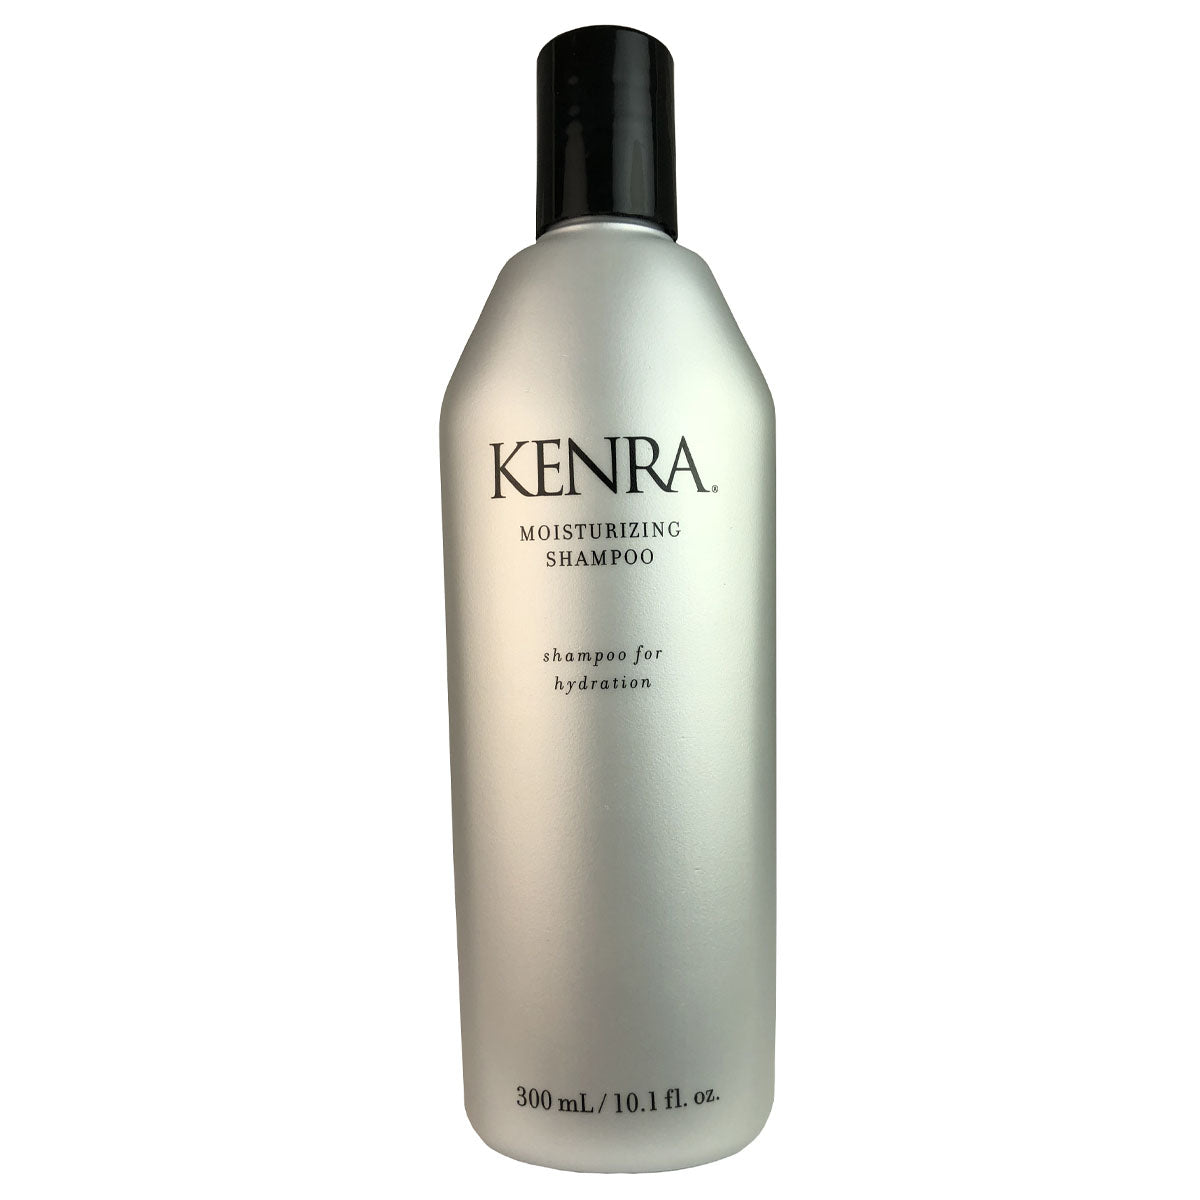 Kenra Moisturizing Hair Shampoo 10.1 oz